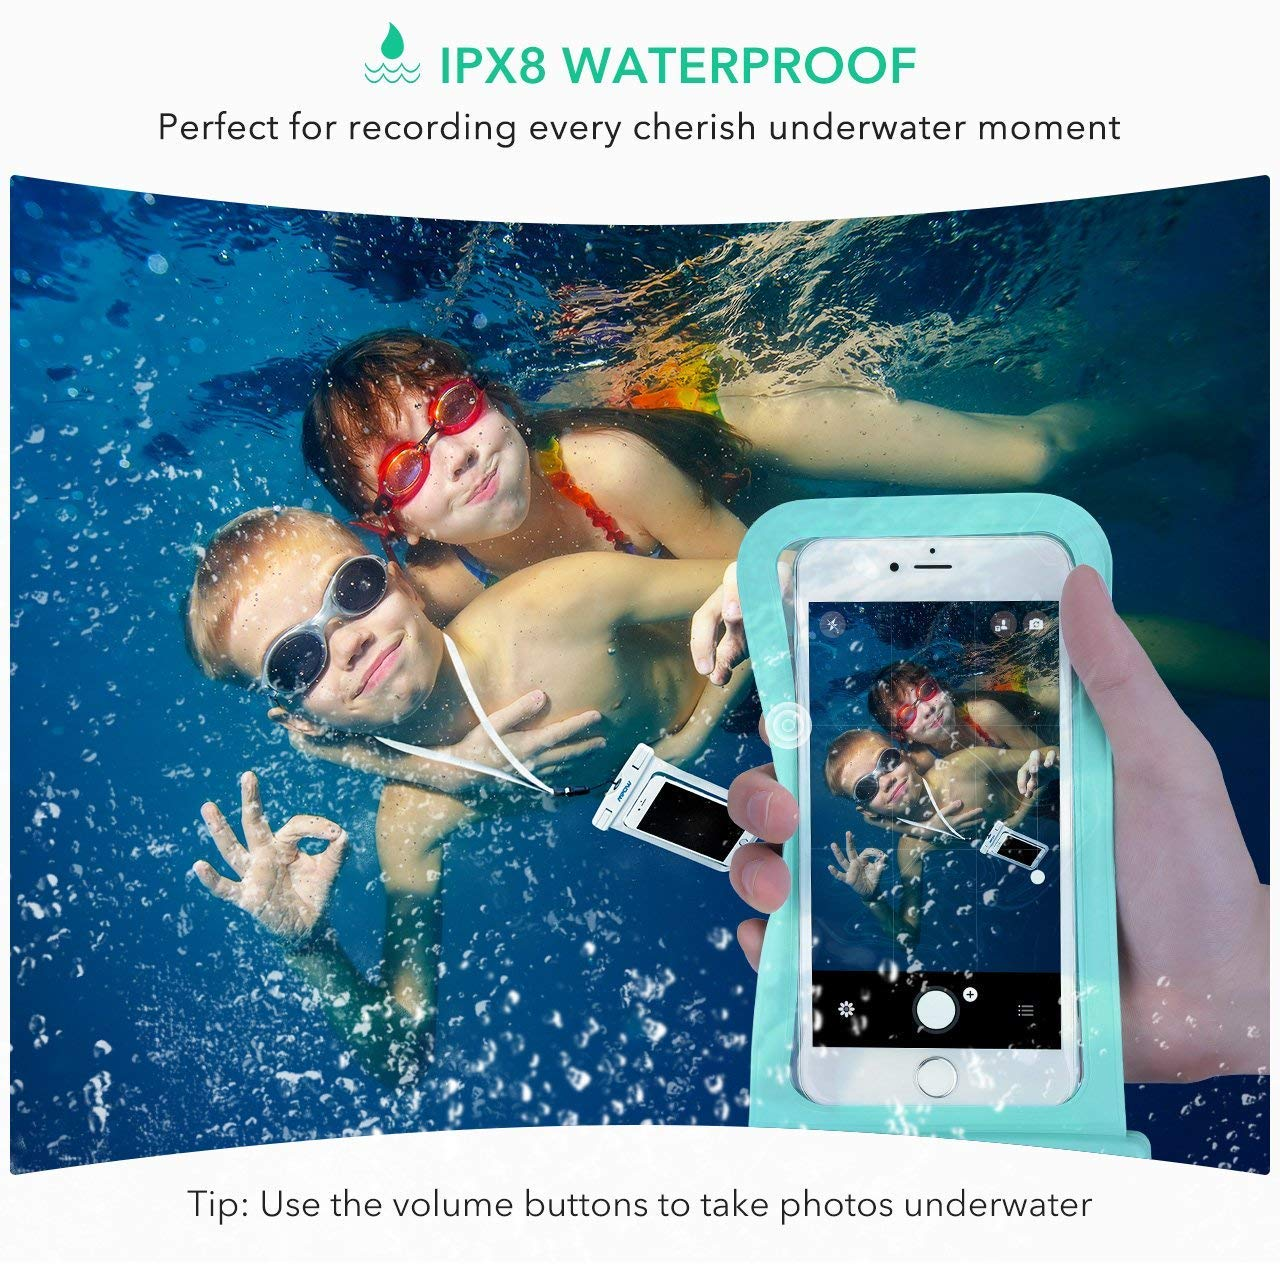 Mpow Universal Waterproof Case, IPX8 Waterproof Phone Pouch Dry Bag Compatible for iPhone Xs Max/Xs/Xr/X/8/8plus/7/7plus/6s/6/6s Plus Galaxy s9/s8/s7 Google Pixel HTC12 (Light Blue+Black 2-Pack) by Mpow (Image #7)